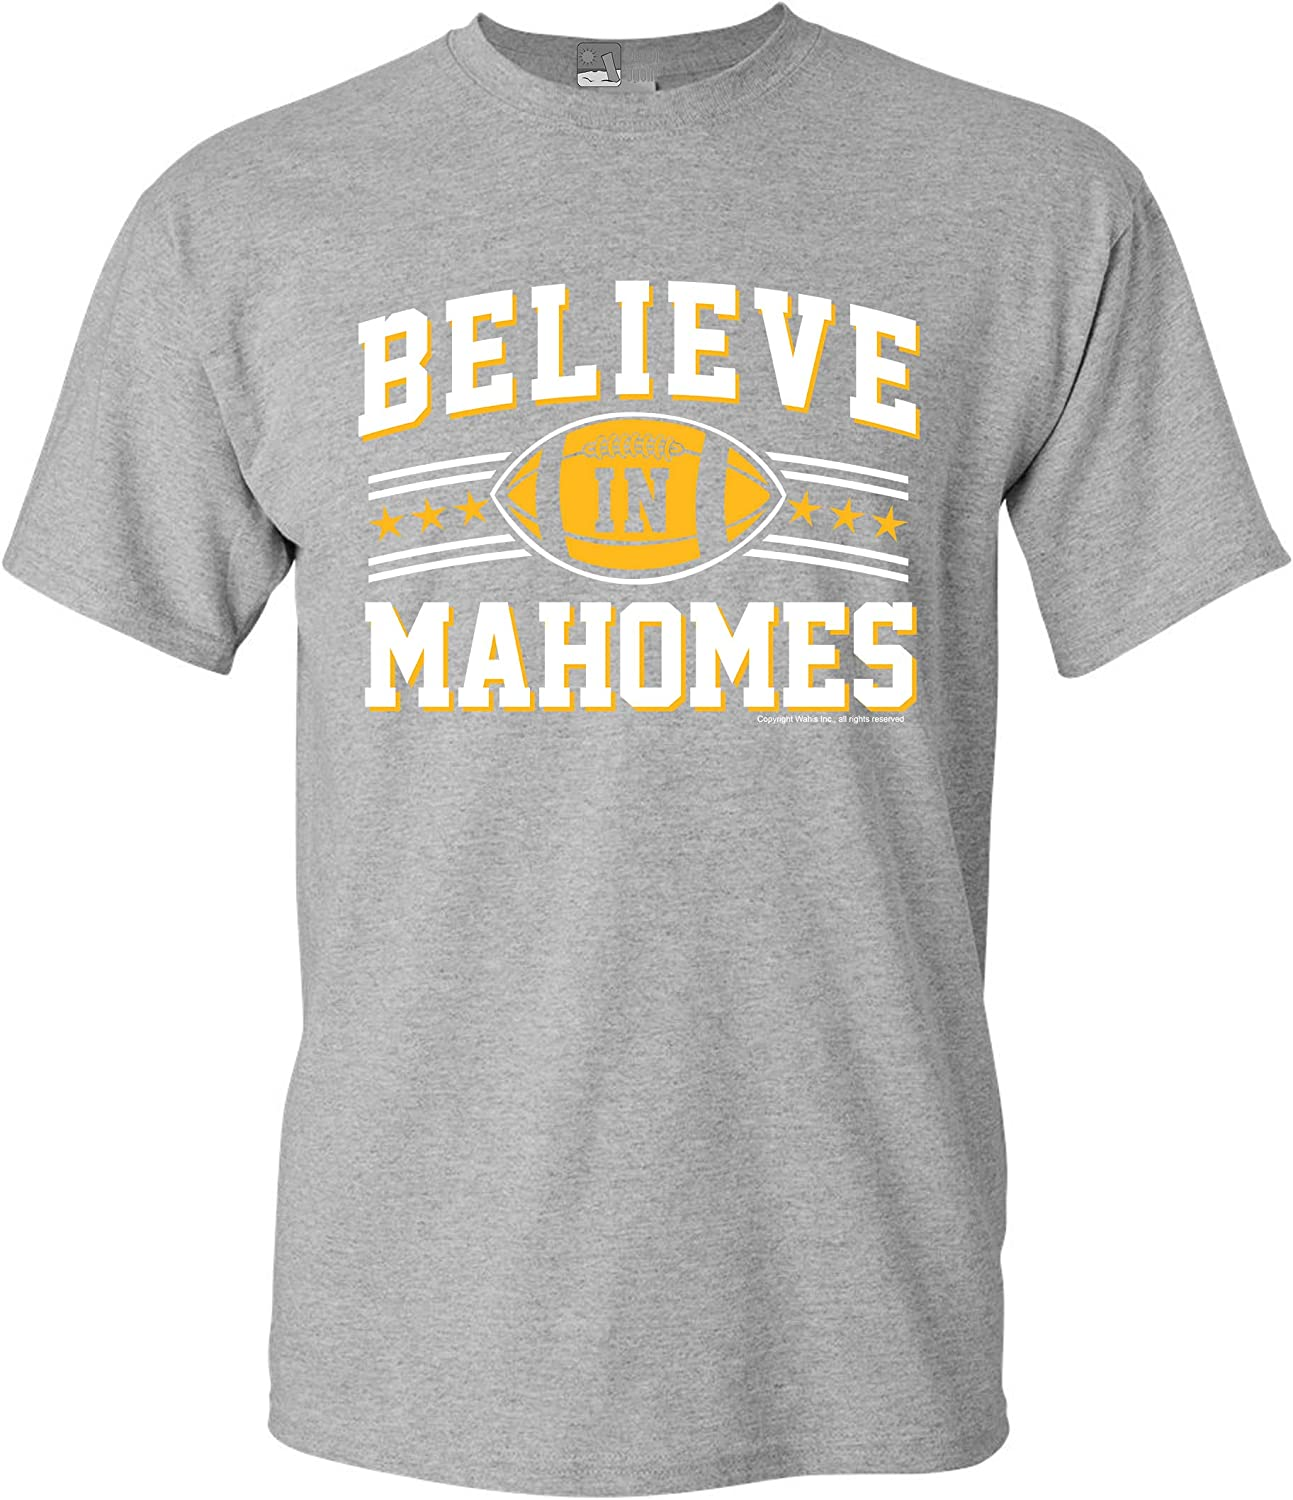 Believe in Mahomes Kansas City Football Fan Wear DT Adult T-Shirt Tee